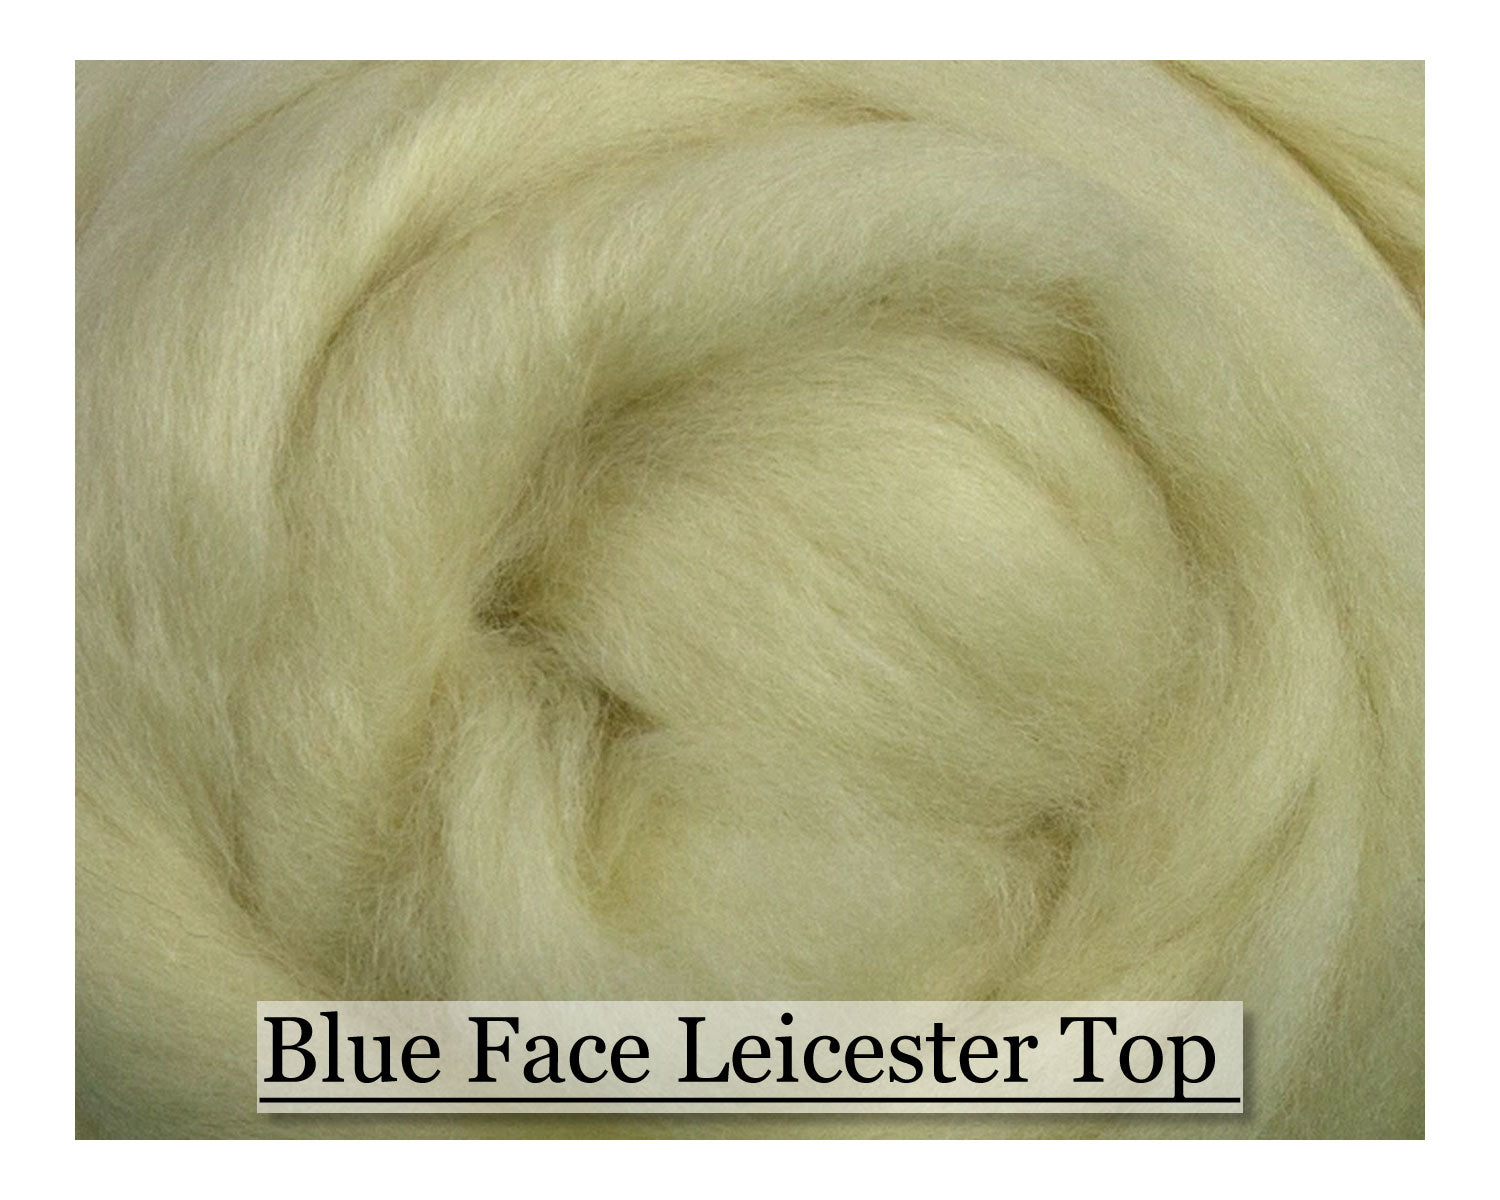 Blue Faced Leicester Top - 8oz